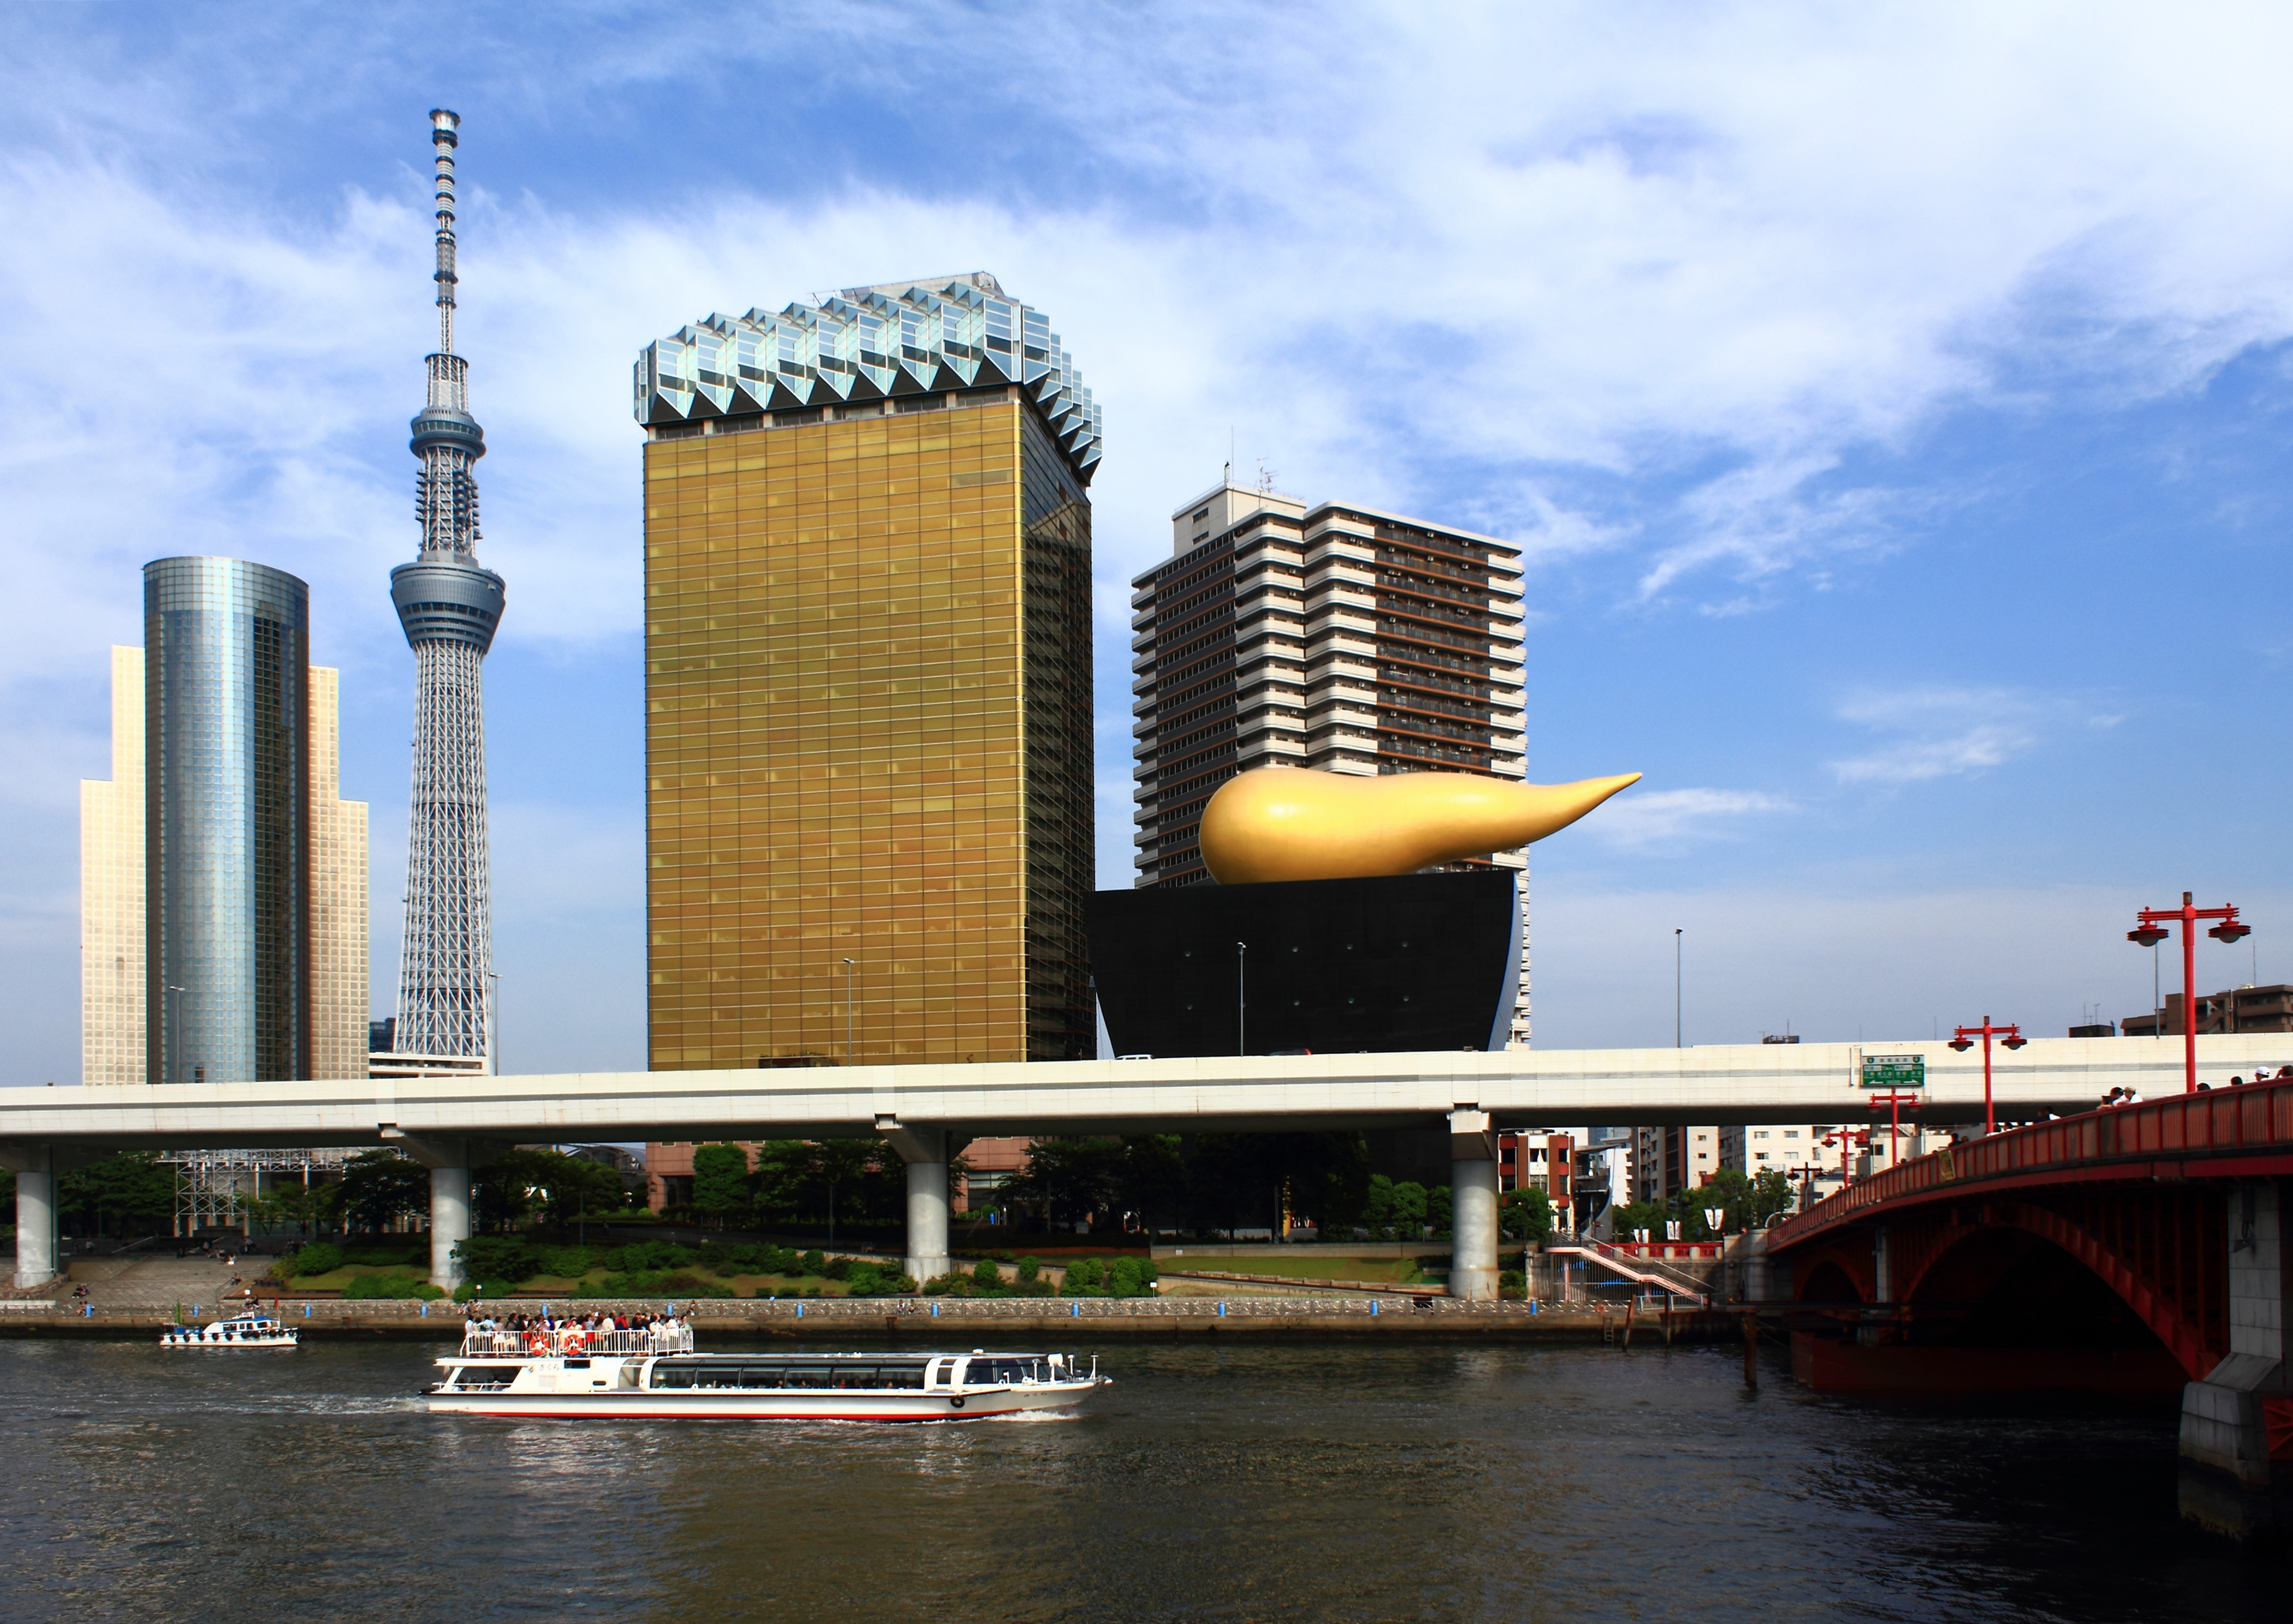 Philippe Starck File:skytree & Asahi Breweries Building, From Azumabashi